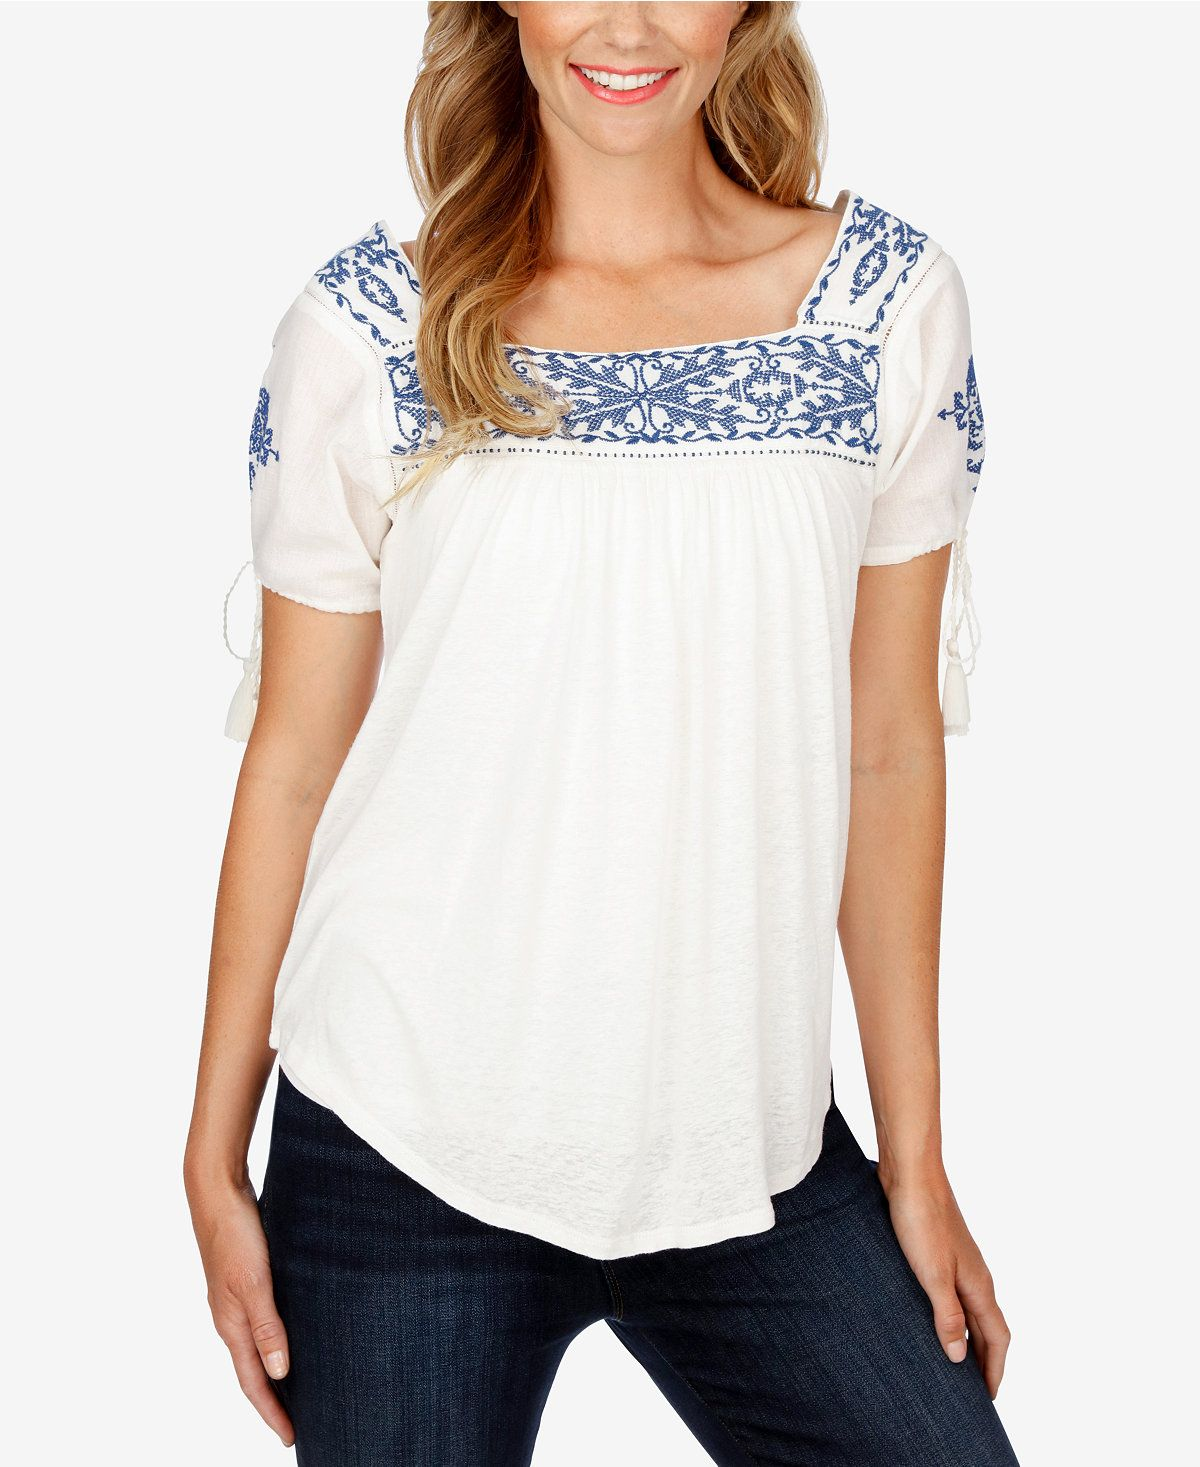 0a892386c675b9 $27.99 Lucky Brand Embroidered Peasant Top - Tops - Women - Macy's ...